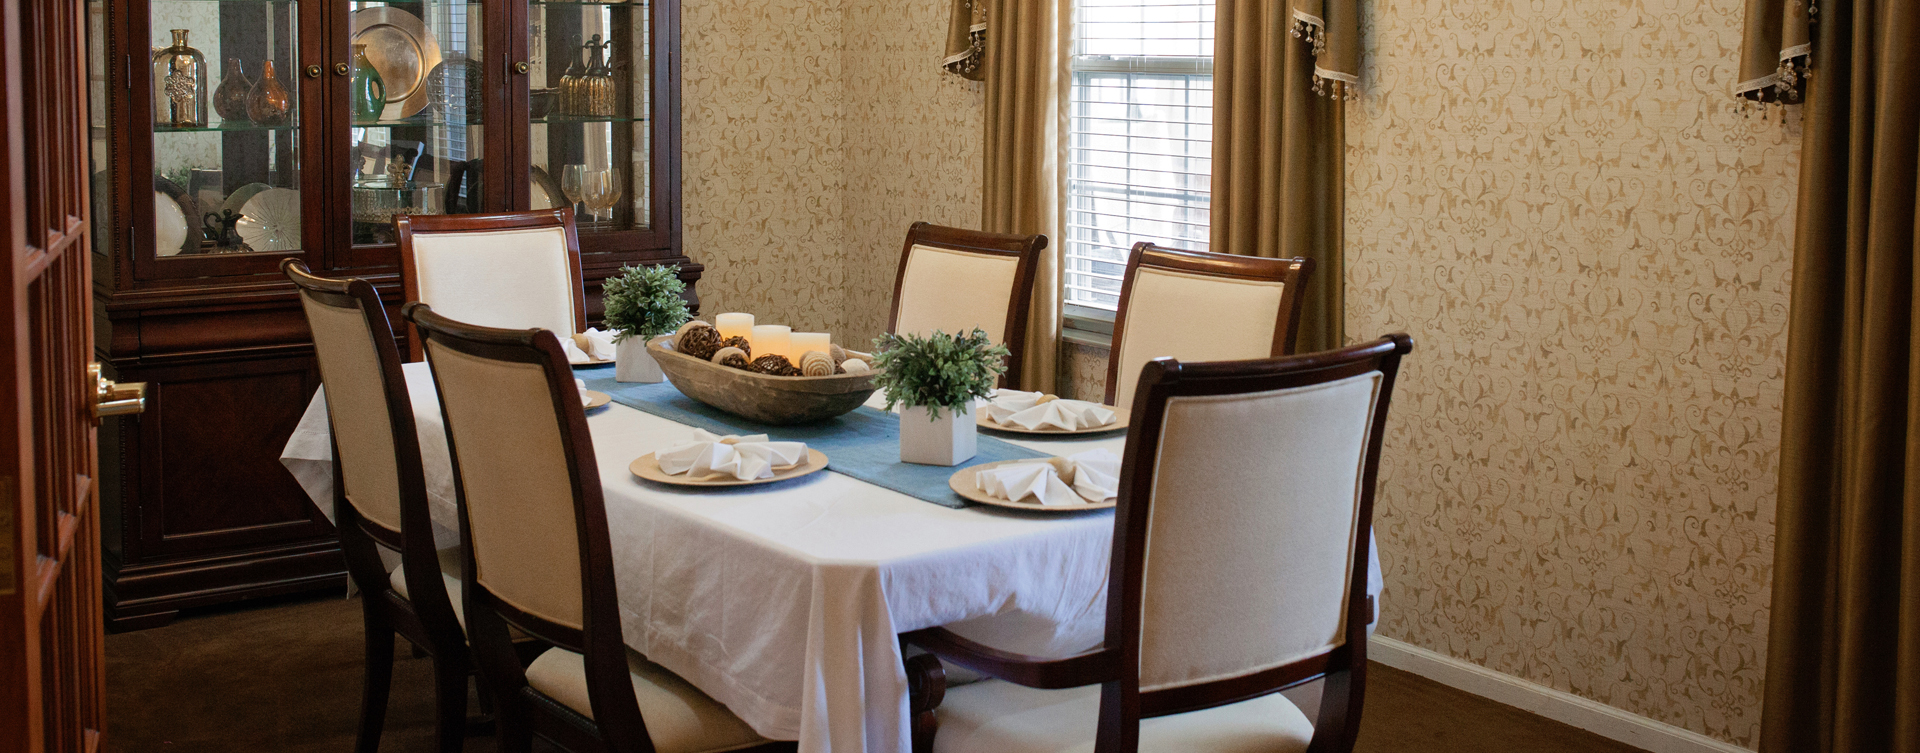 Food is best when shared with family and friends in the private dining room at Bickford of Marion